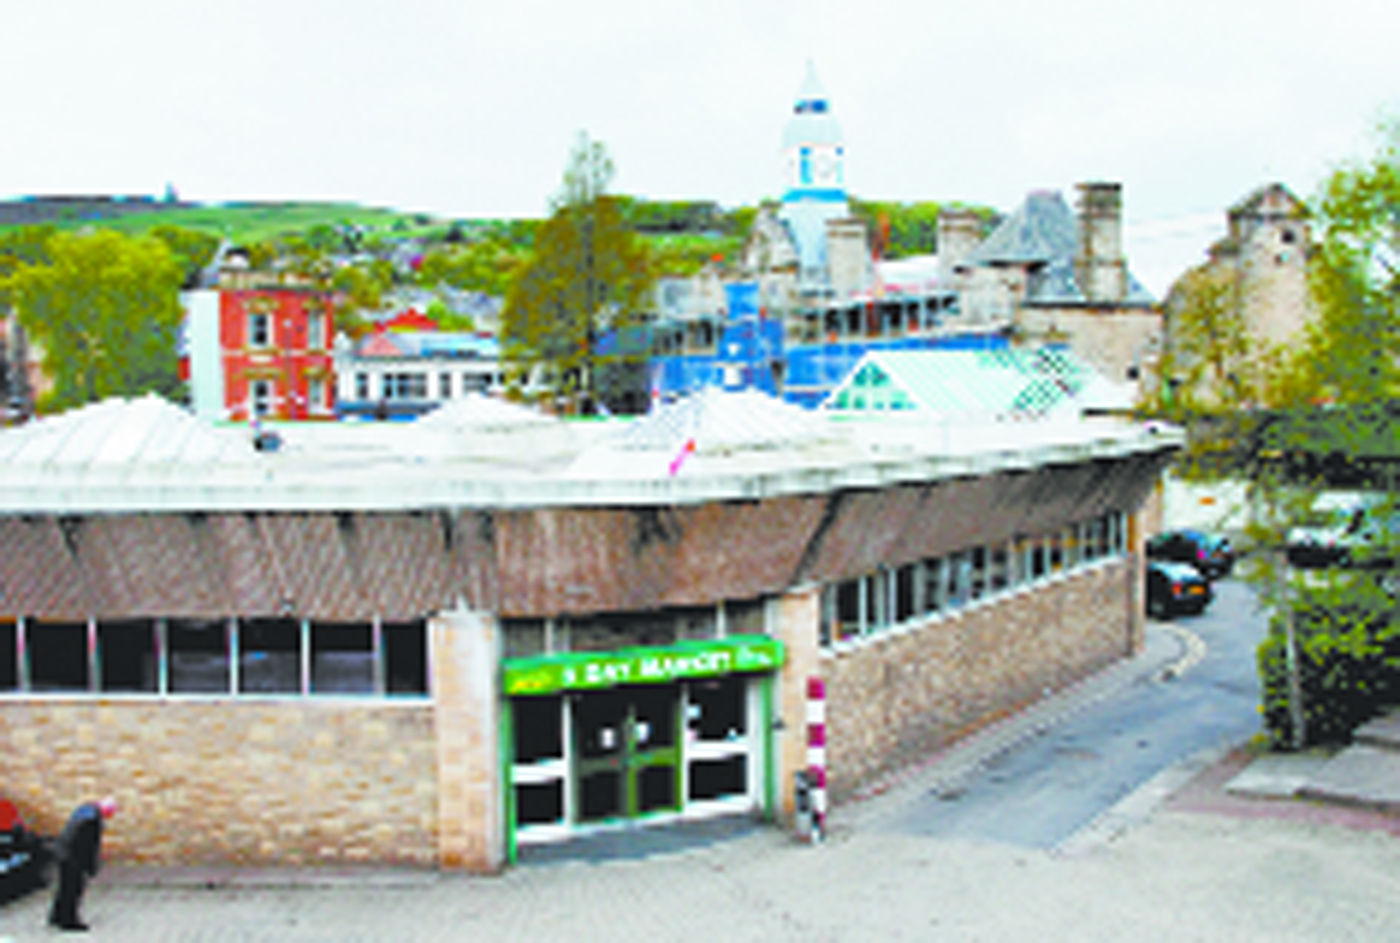 Darwen Market needs more investment